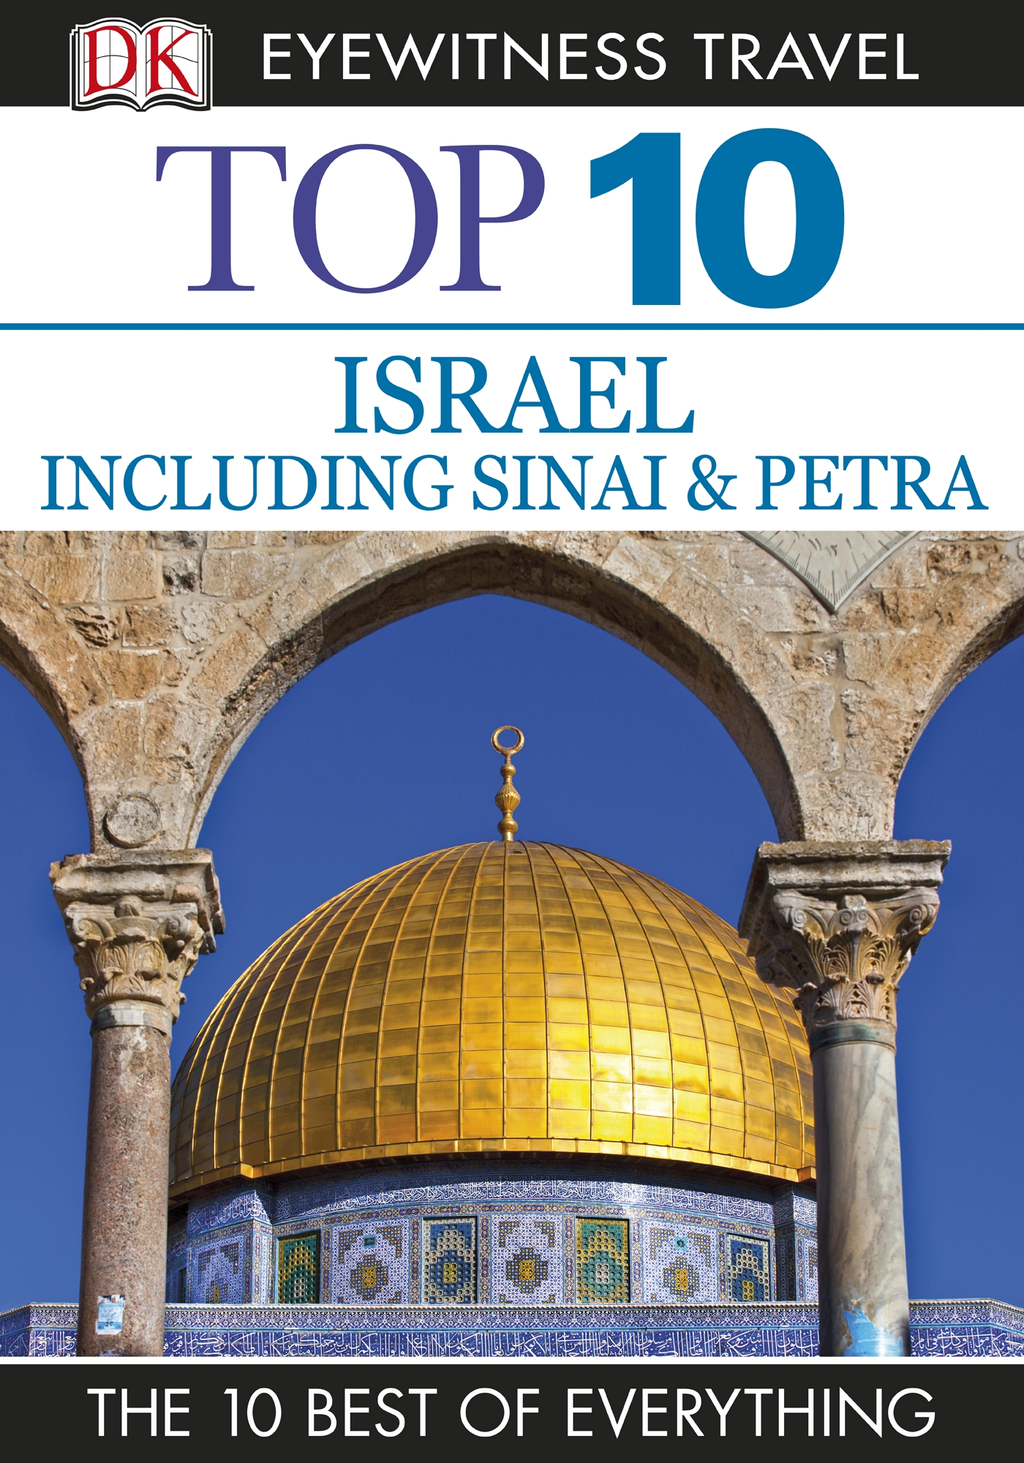 Top 10 Israel, Sinai, and Petra